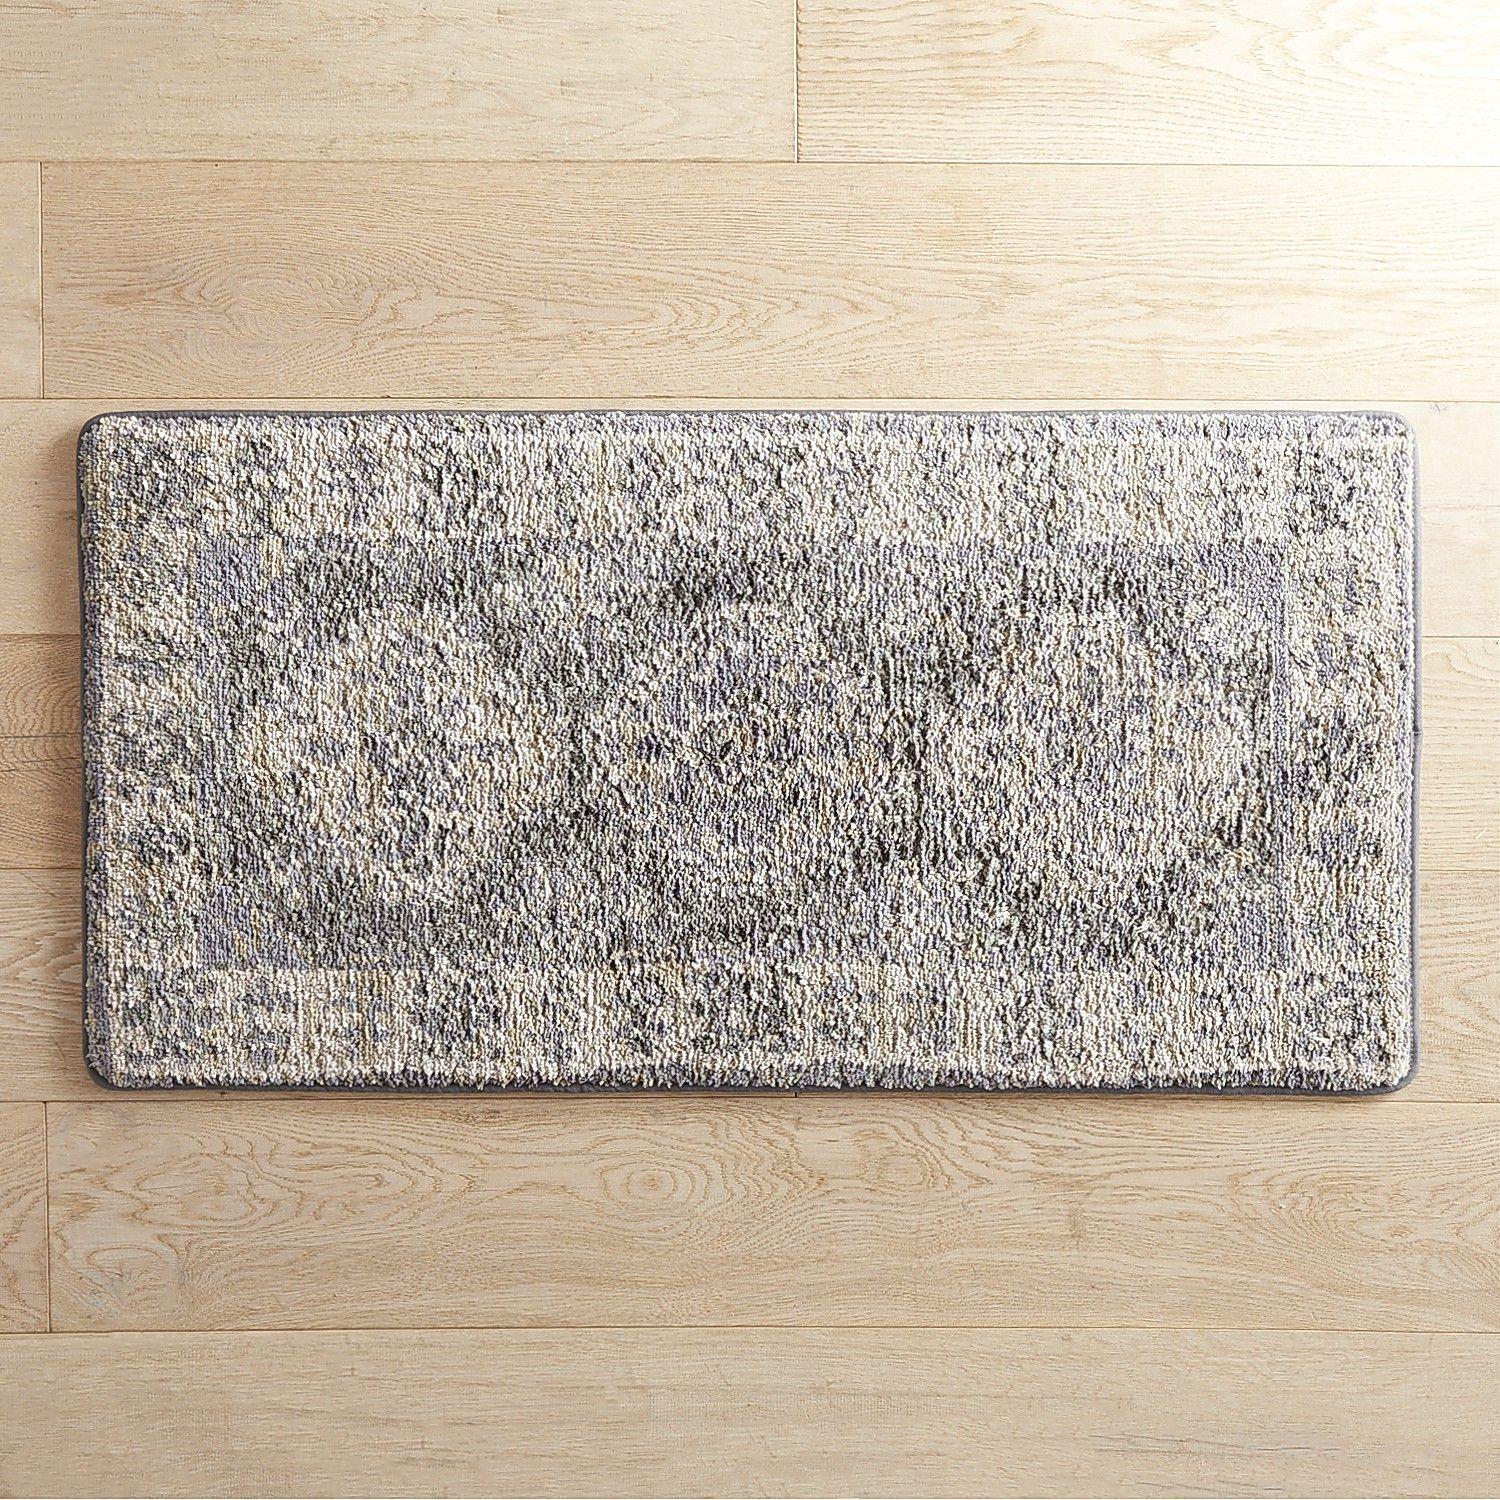 of at and beyond bed walmart bathroom foam lovely mat innovative awesome design sets modern canada rugs memory trendy bath rug